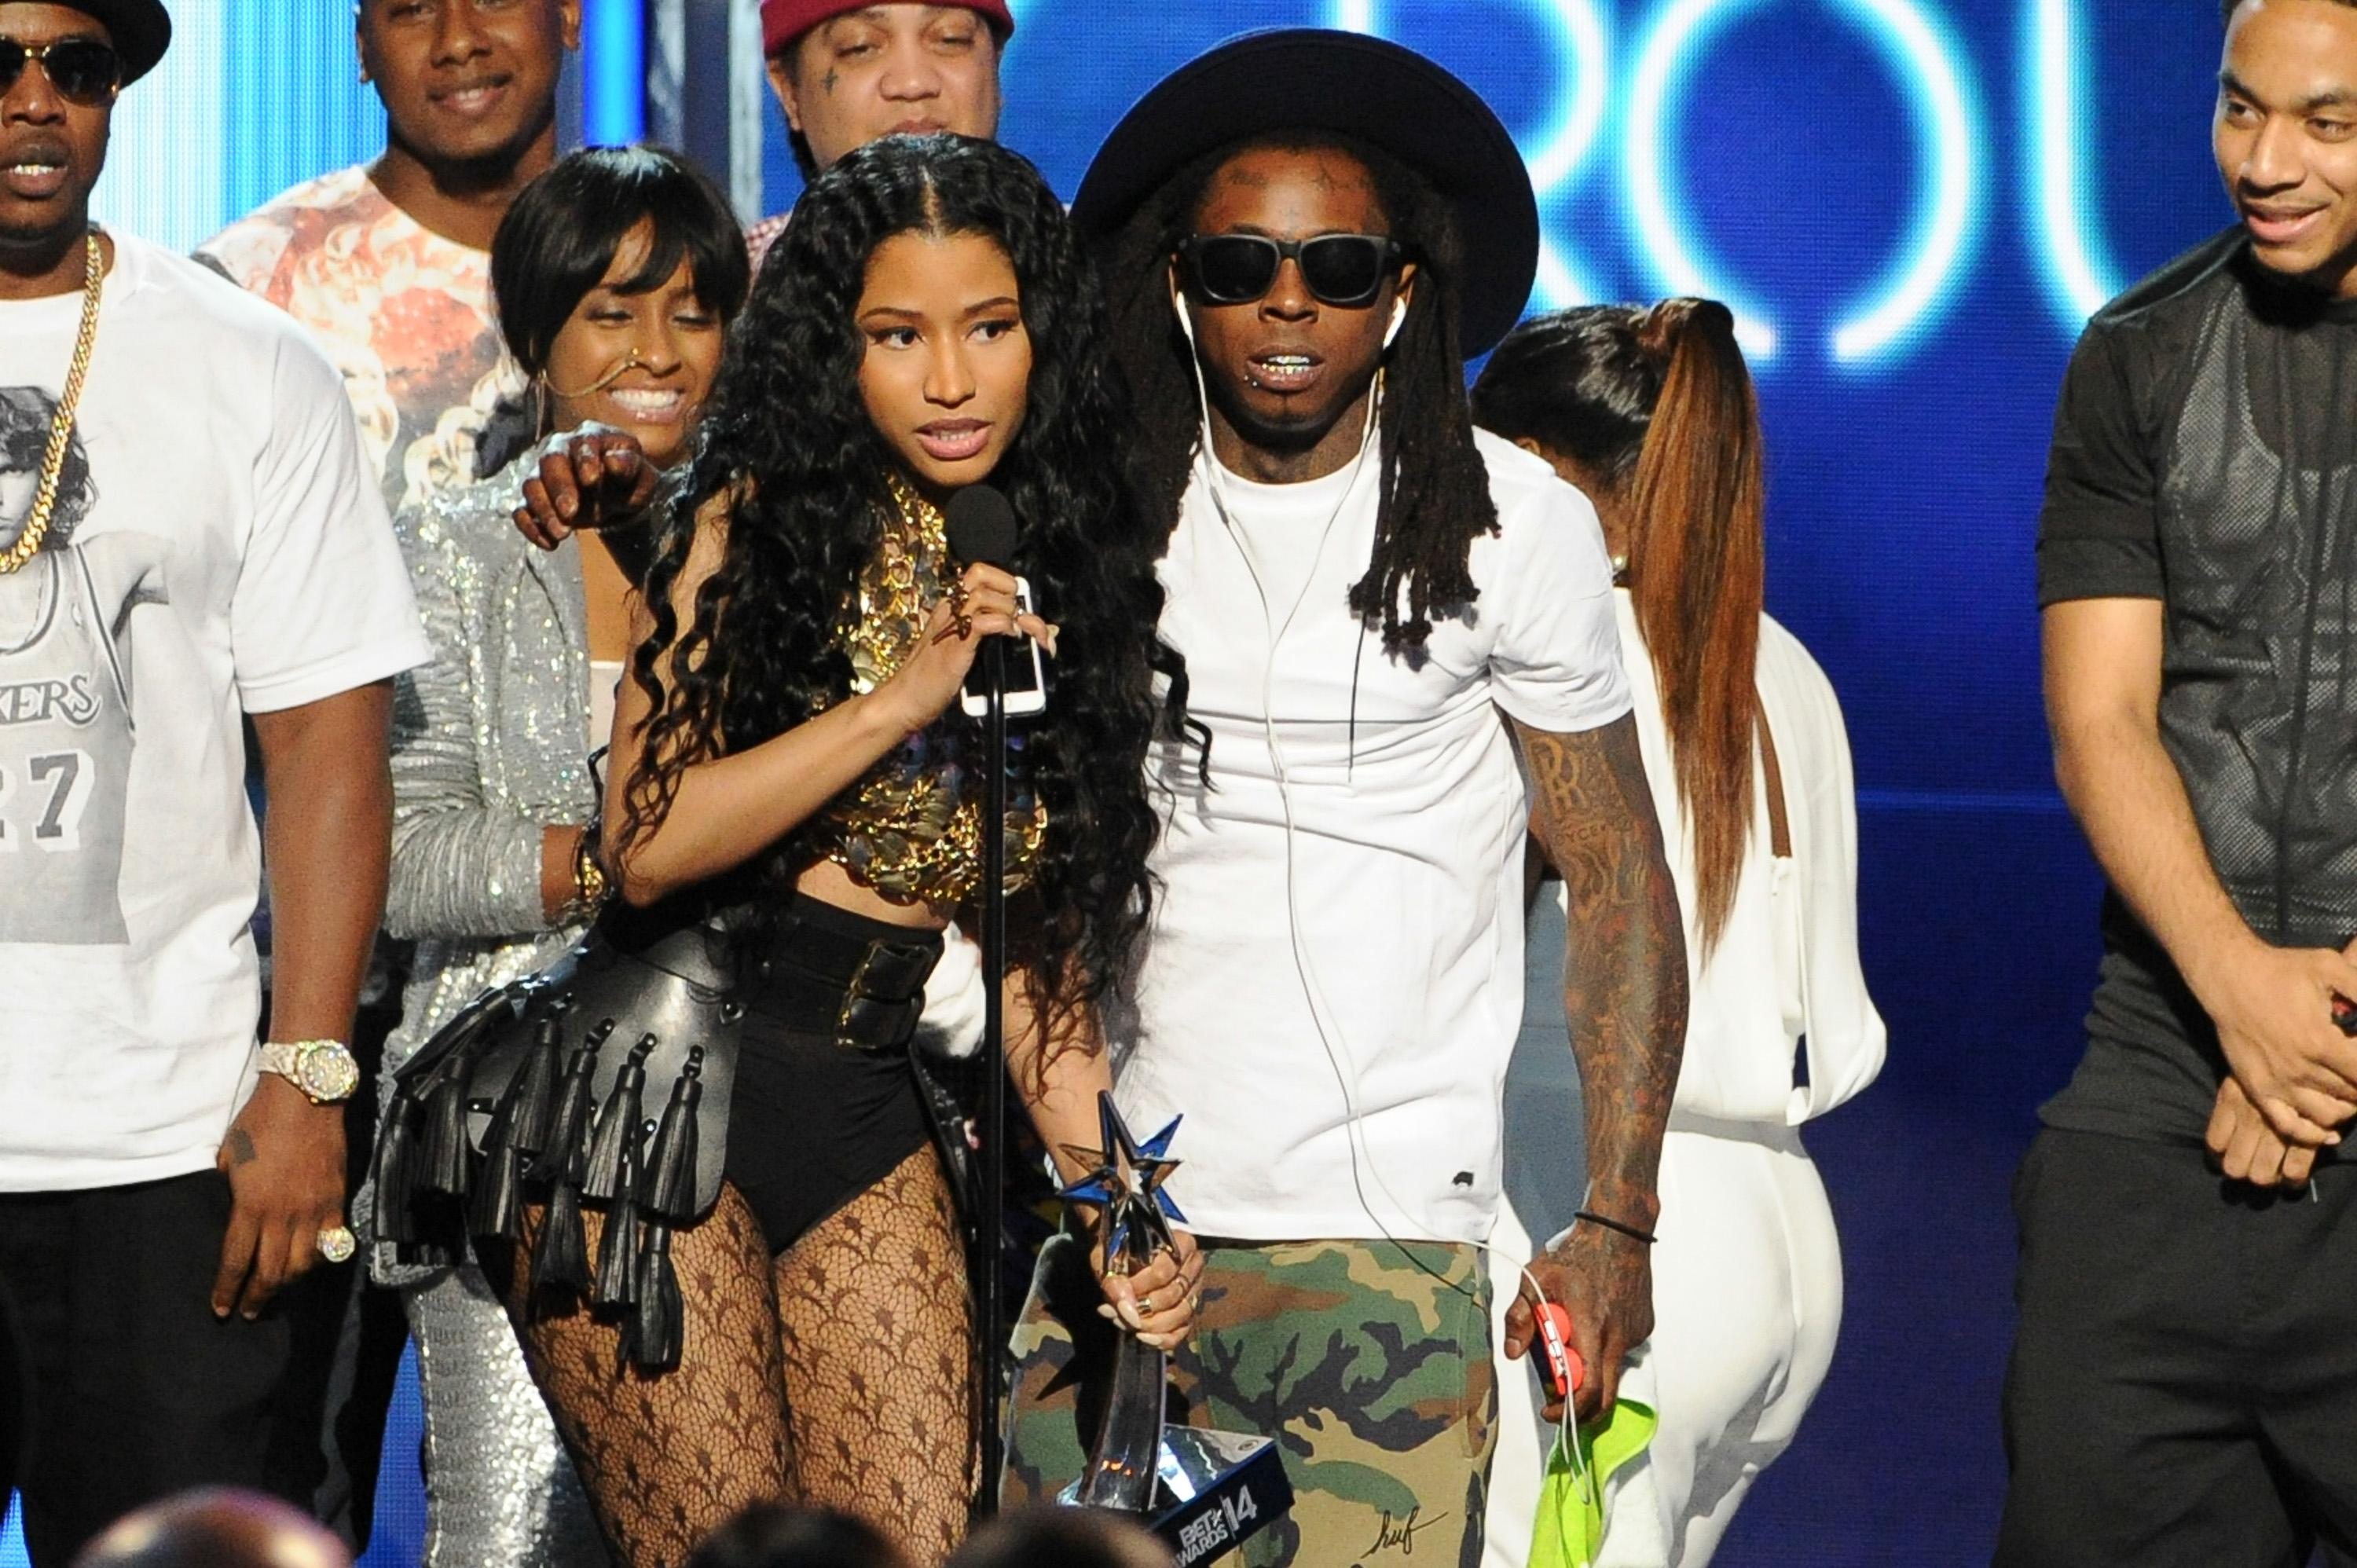 'BET AWARDS' 14 - Show